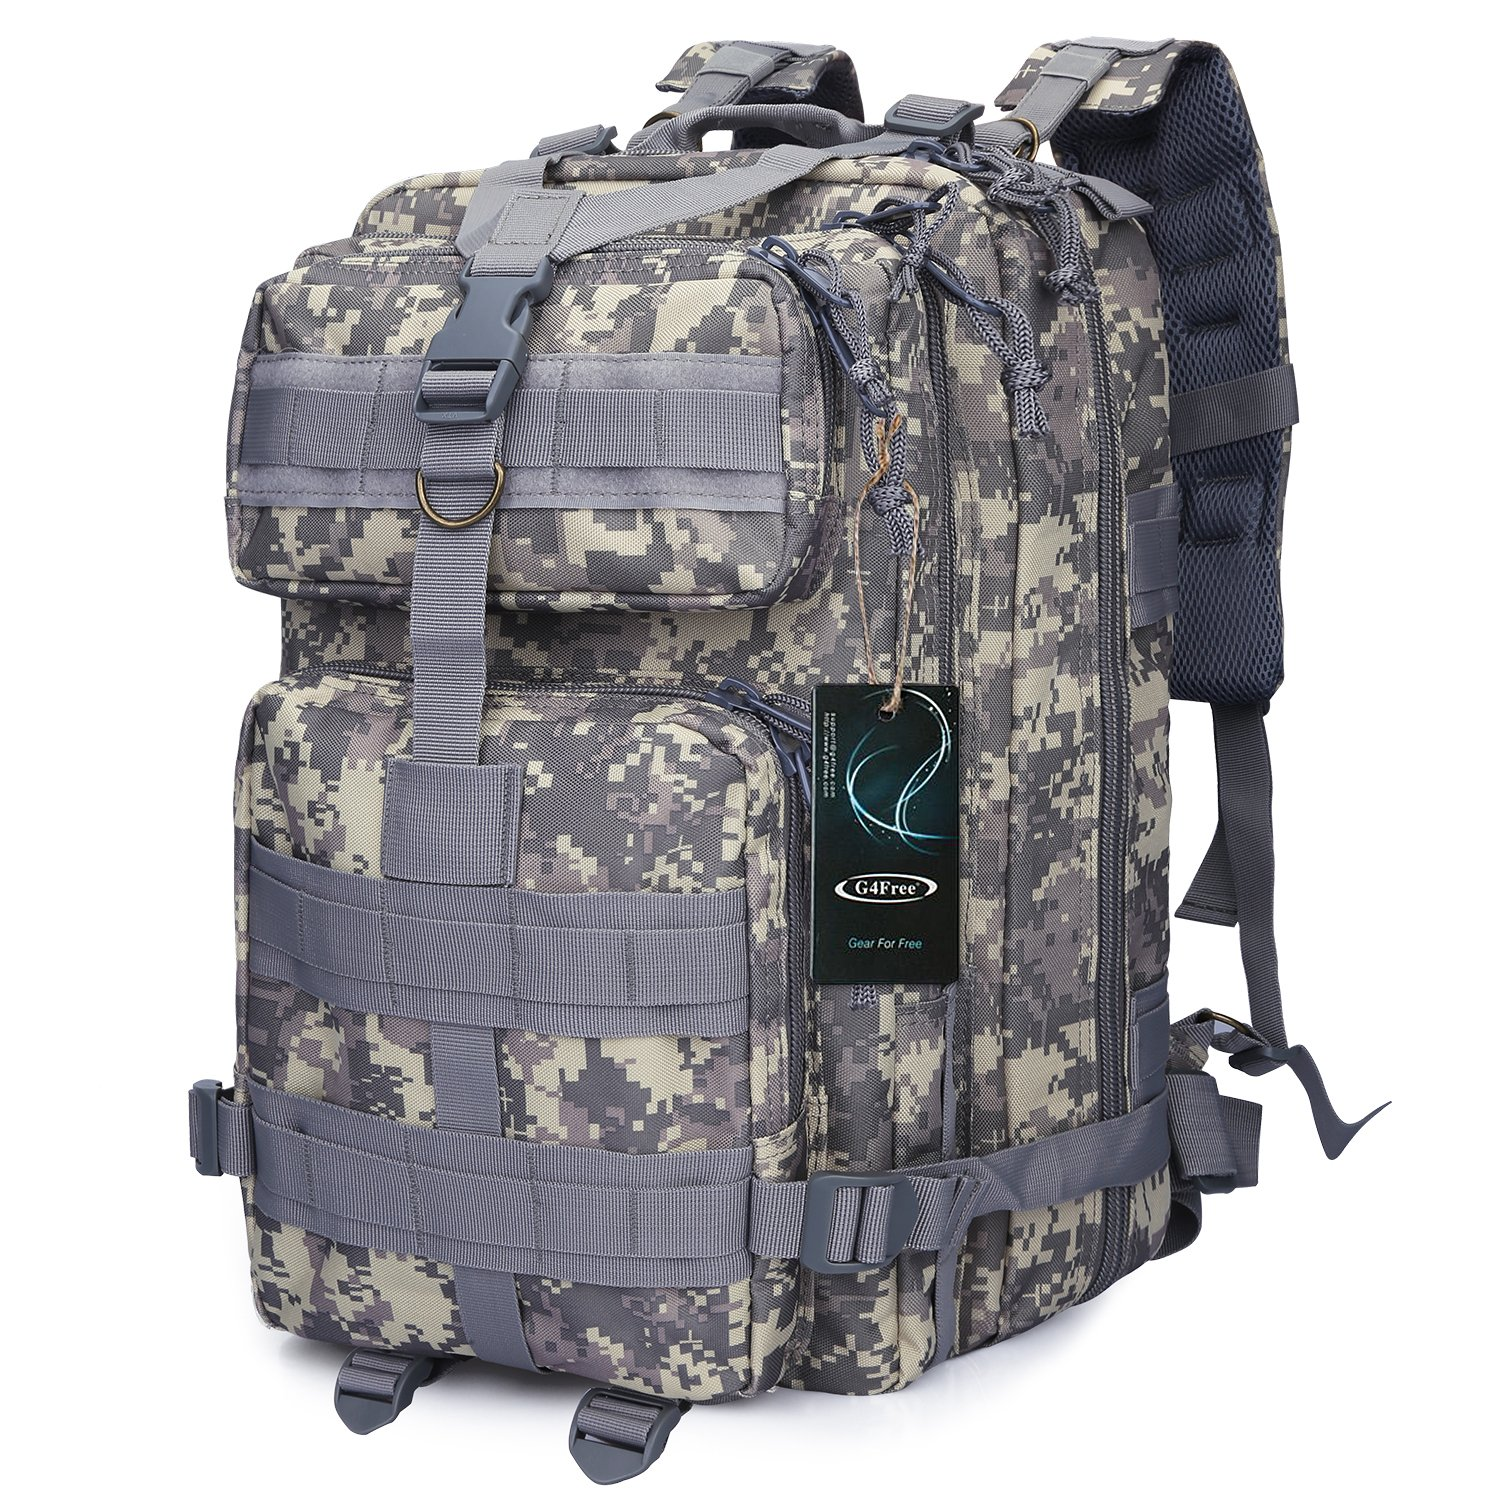 g4free sport outdoor heavy bag military backpack